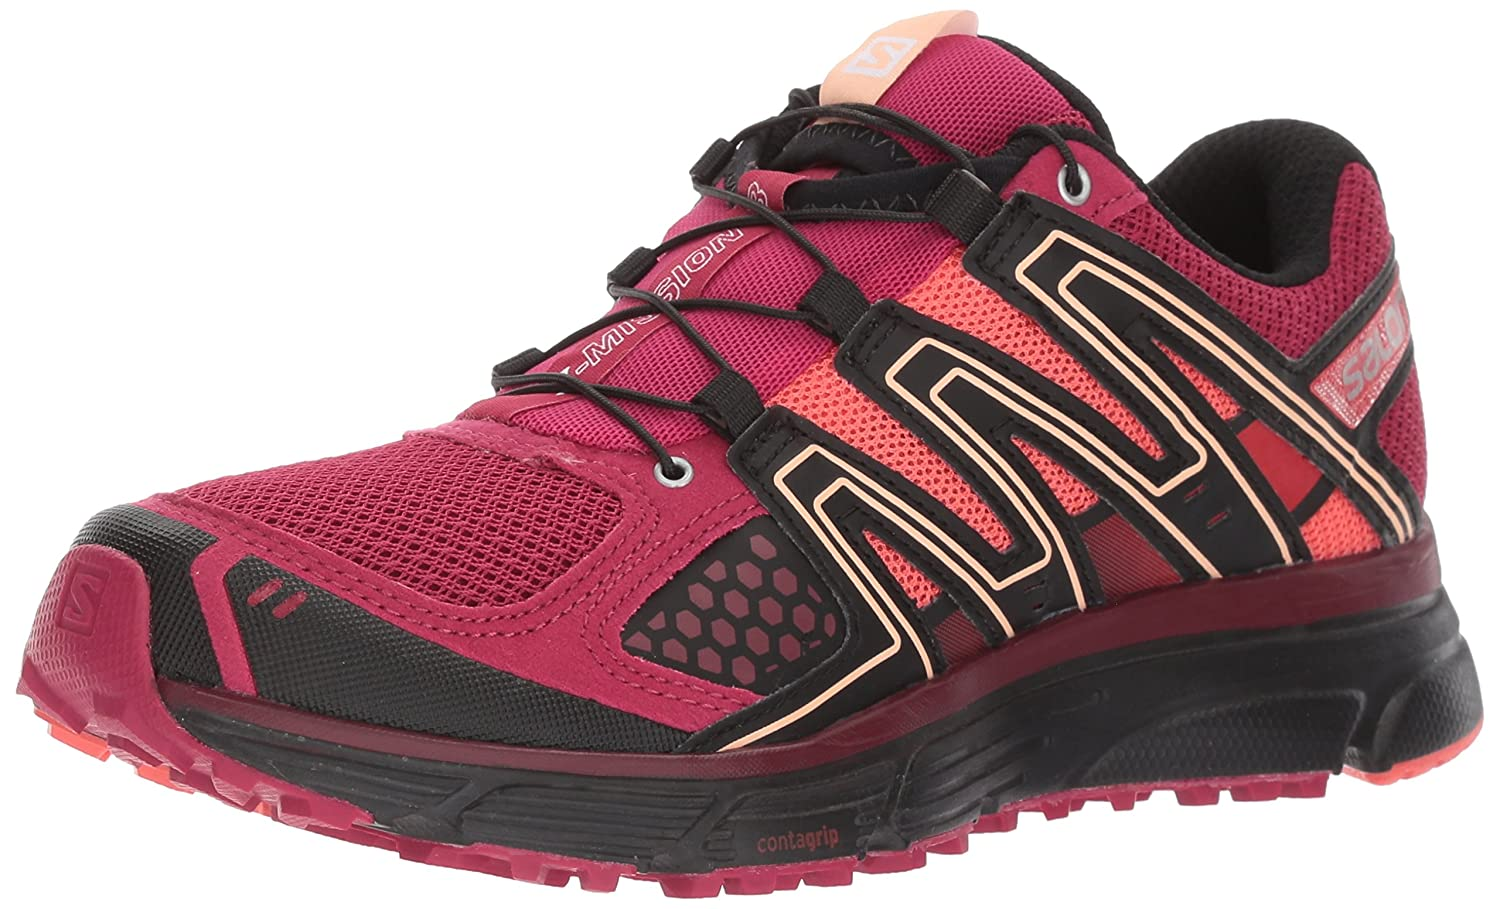 Salomon Women's X-Mission 3 W-w B01N1J0UME 8.5 B(M) US|Sangria/Coral Punch/Black